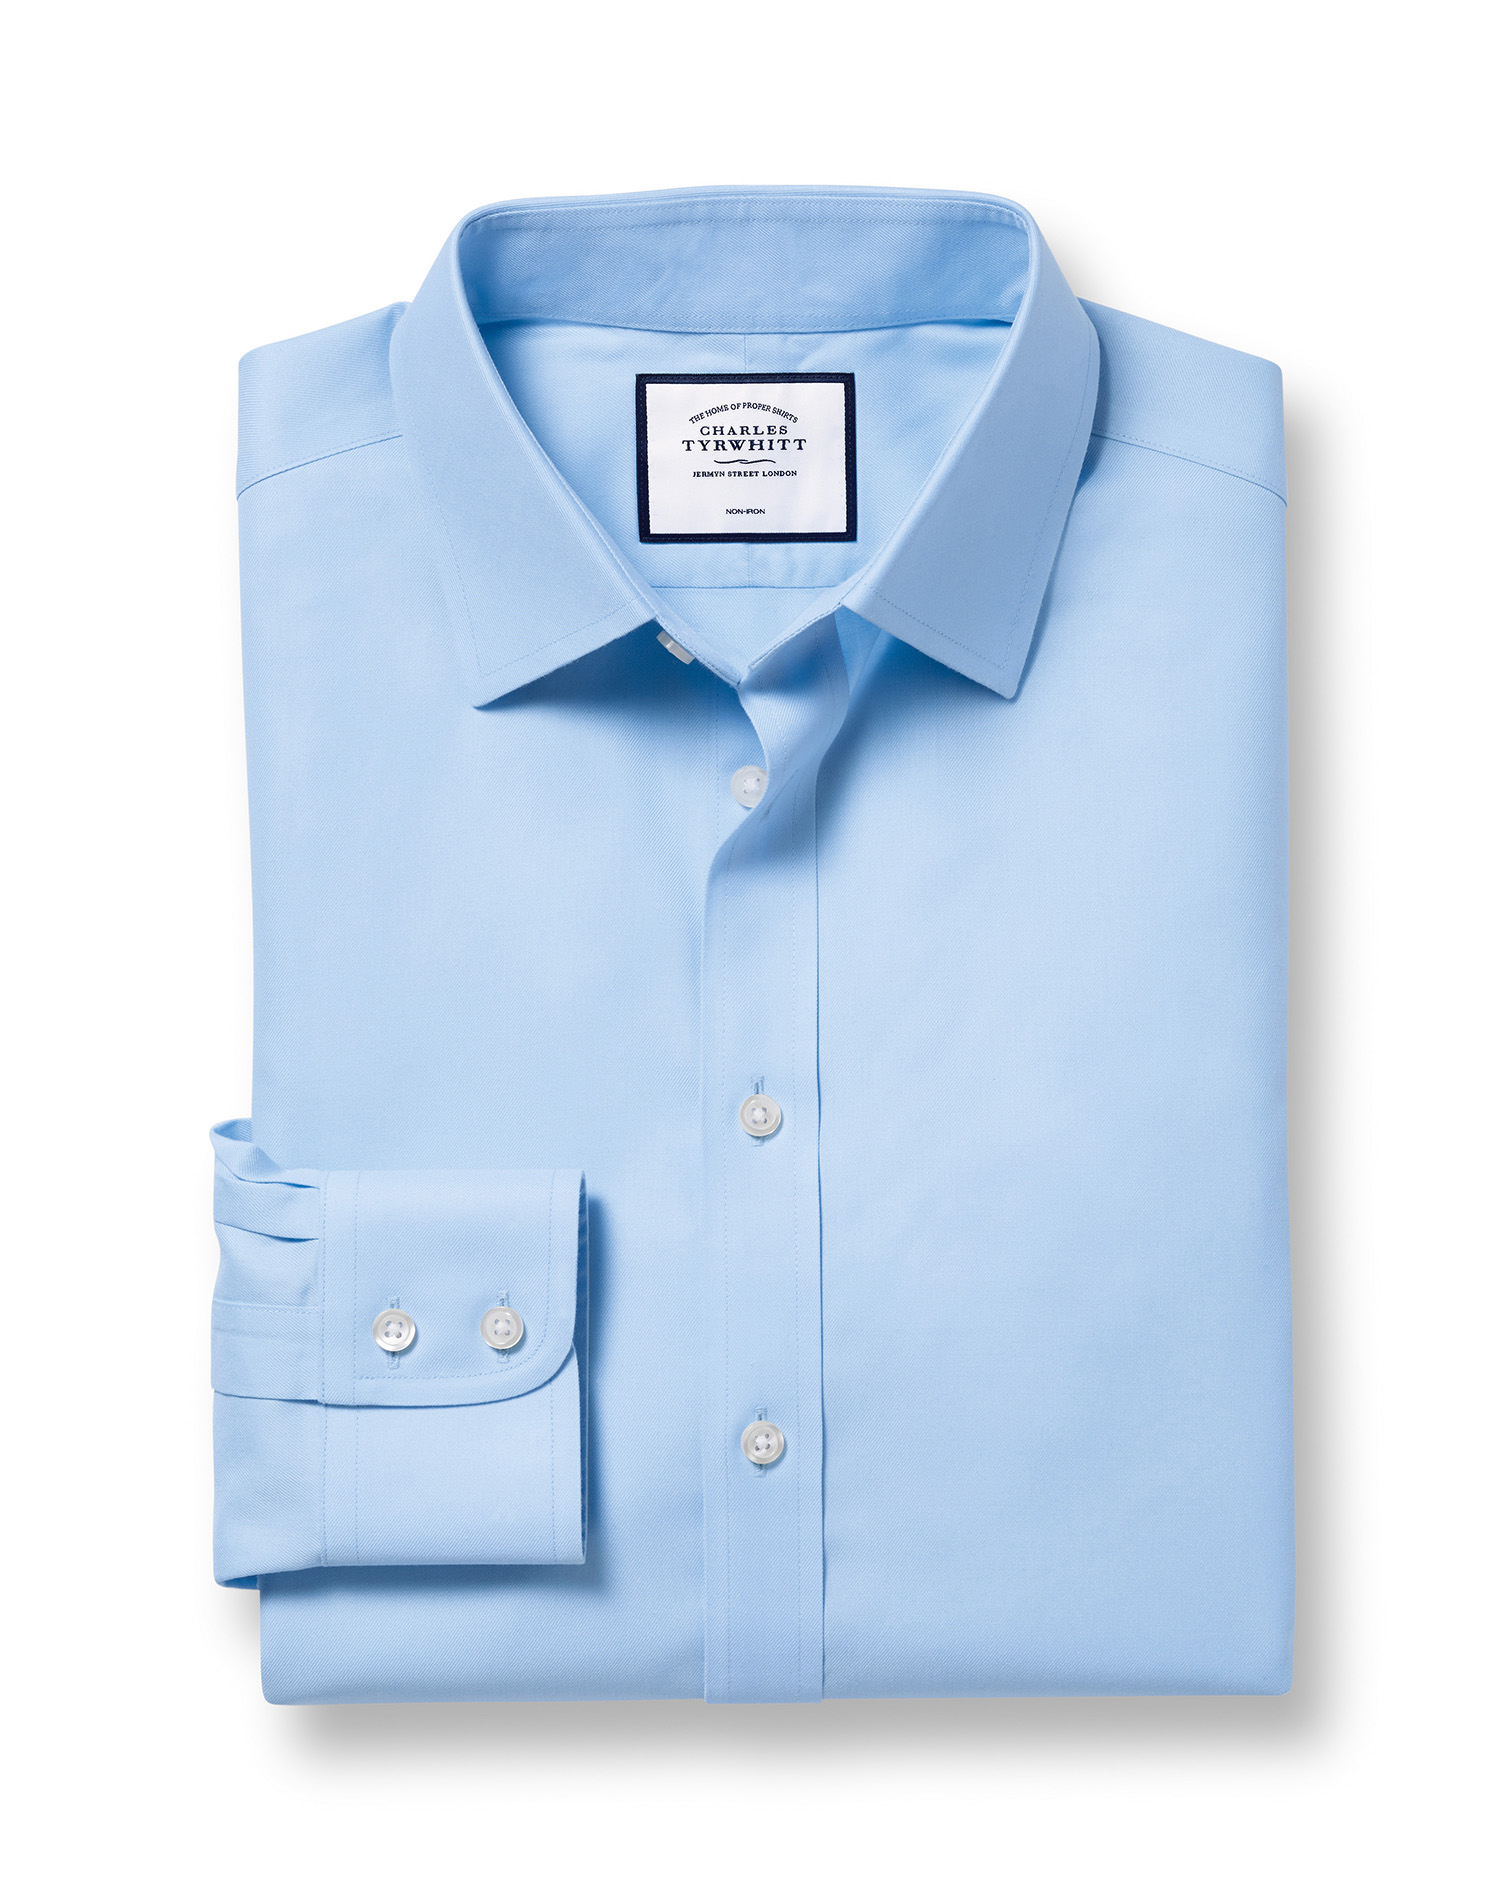 Extra Slim Fit Non-Iron Twill Sky Blue Cotton Formal Shirt Single Cuff Size 14.5/33 by Charles Tyrwh